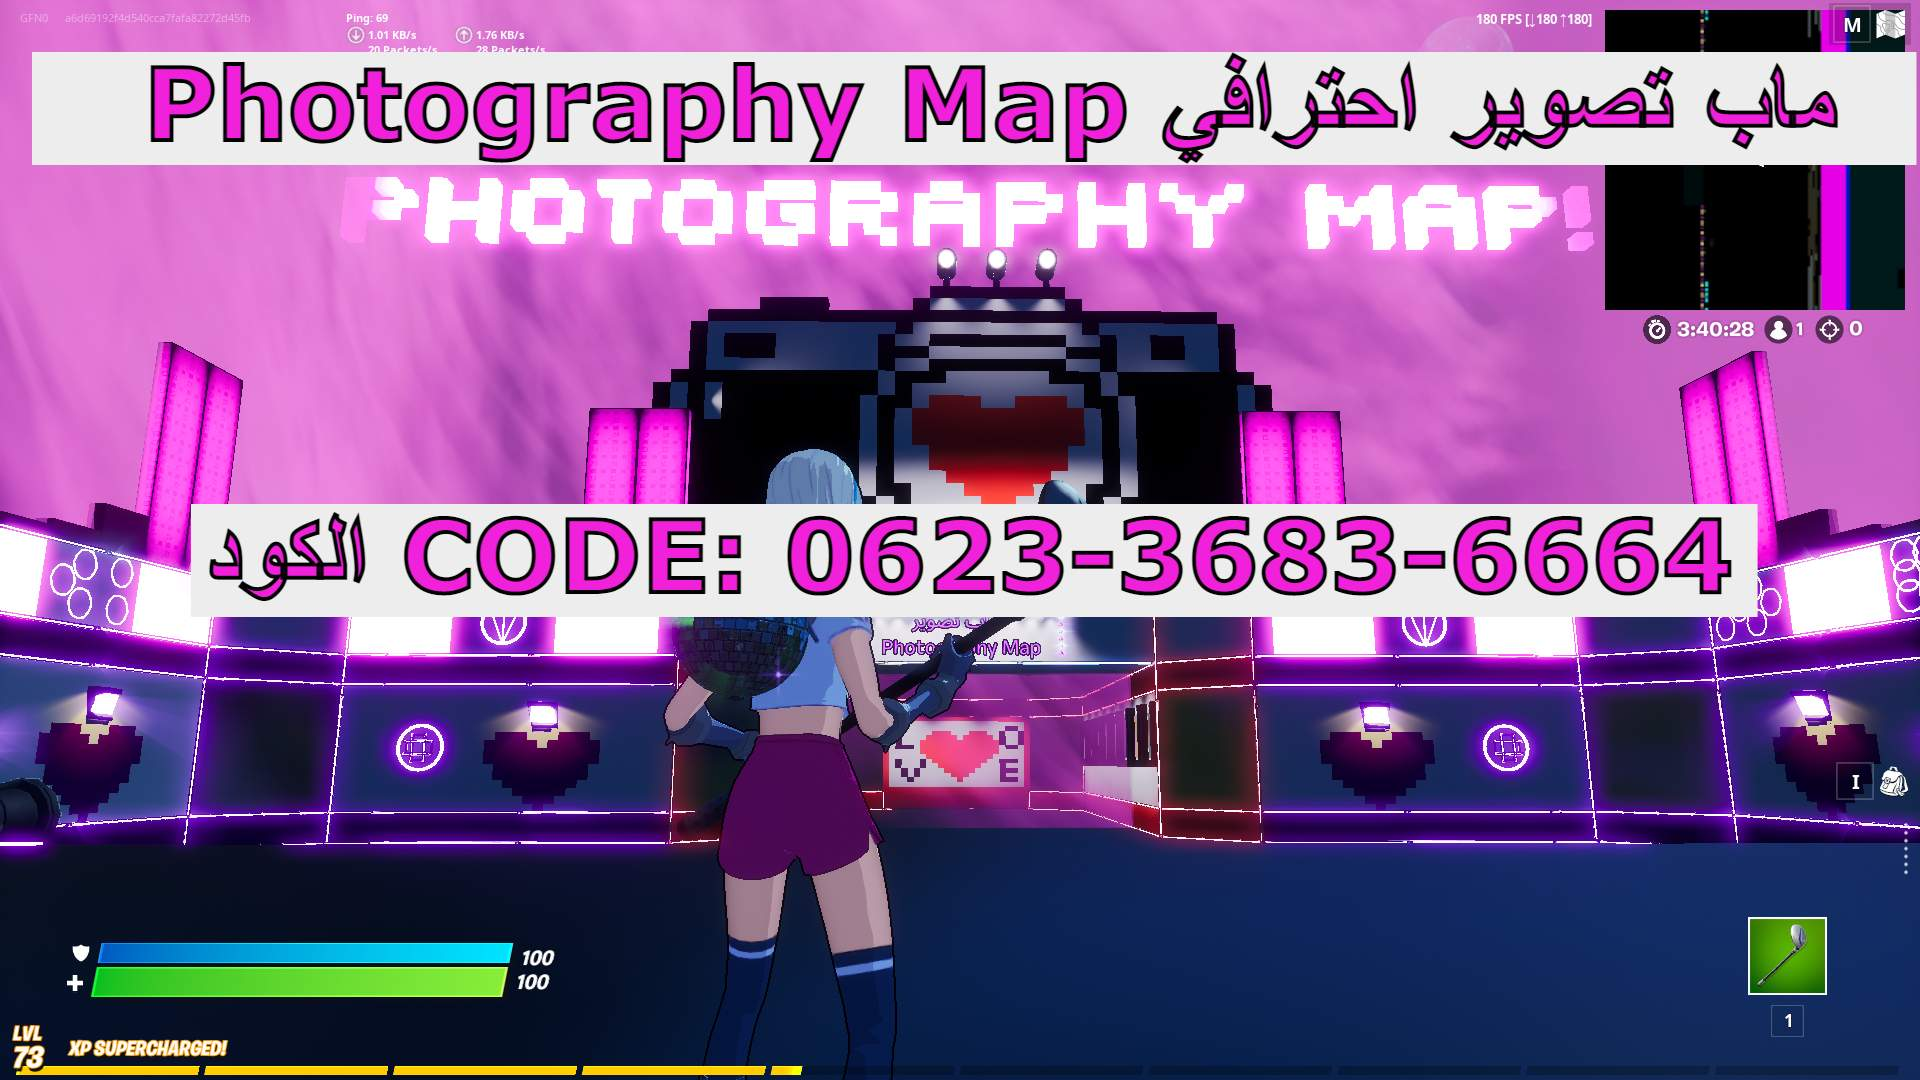 PHOTOGRAPHY MAP ماب تصوير